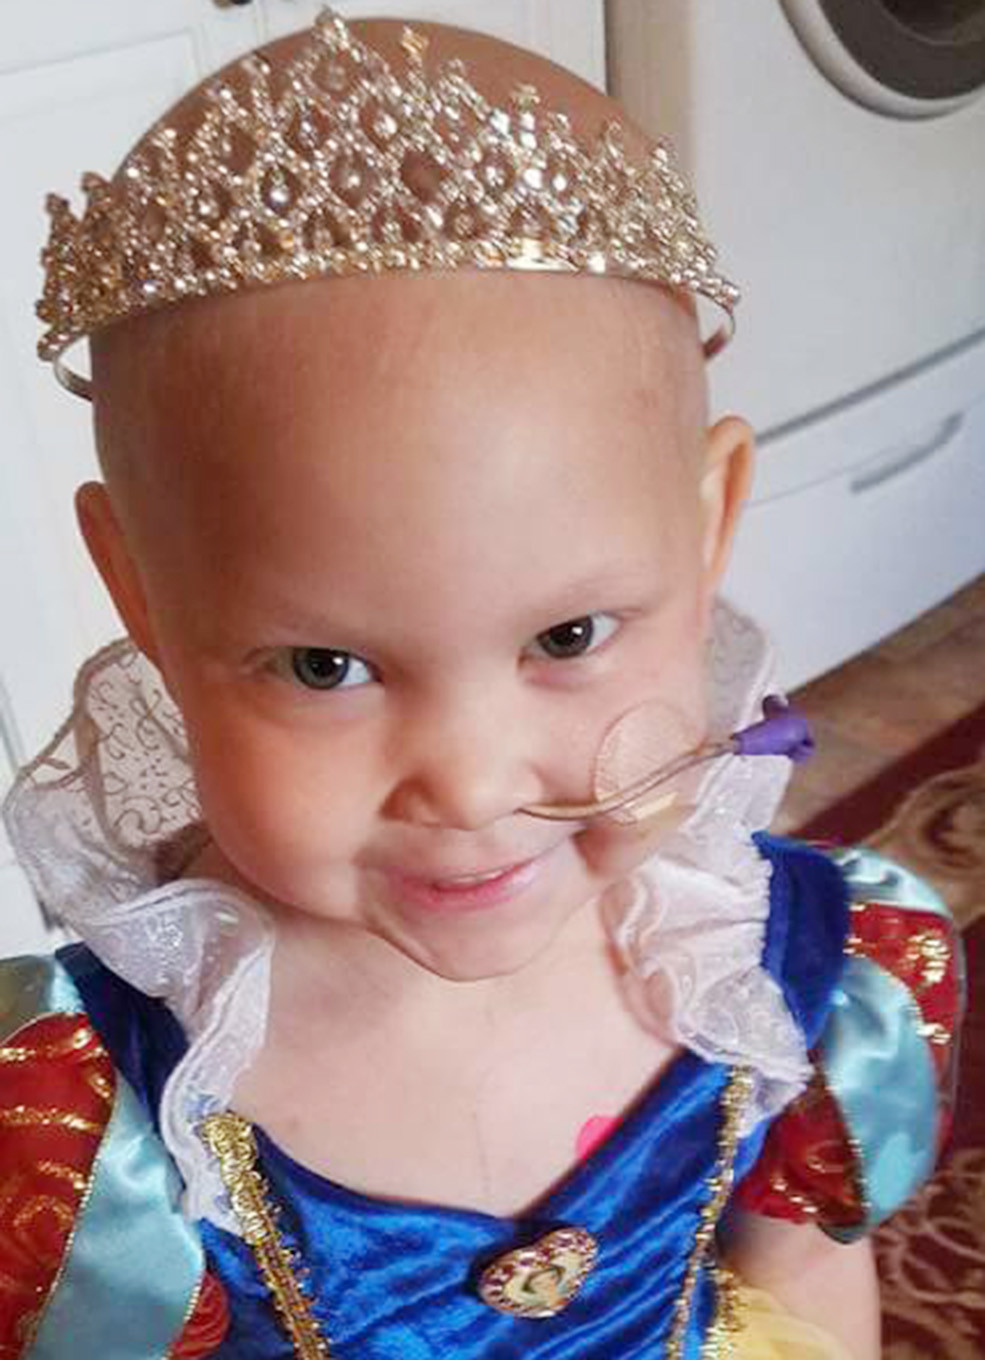 Natalie Bieberbach, 5, passed away Thursday after a long fight with leukemia. – Photo Special to the Eagle